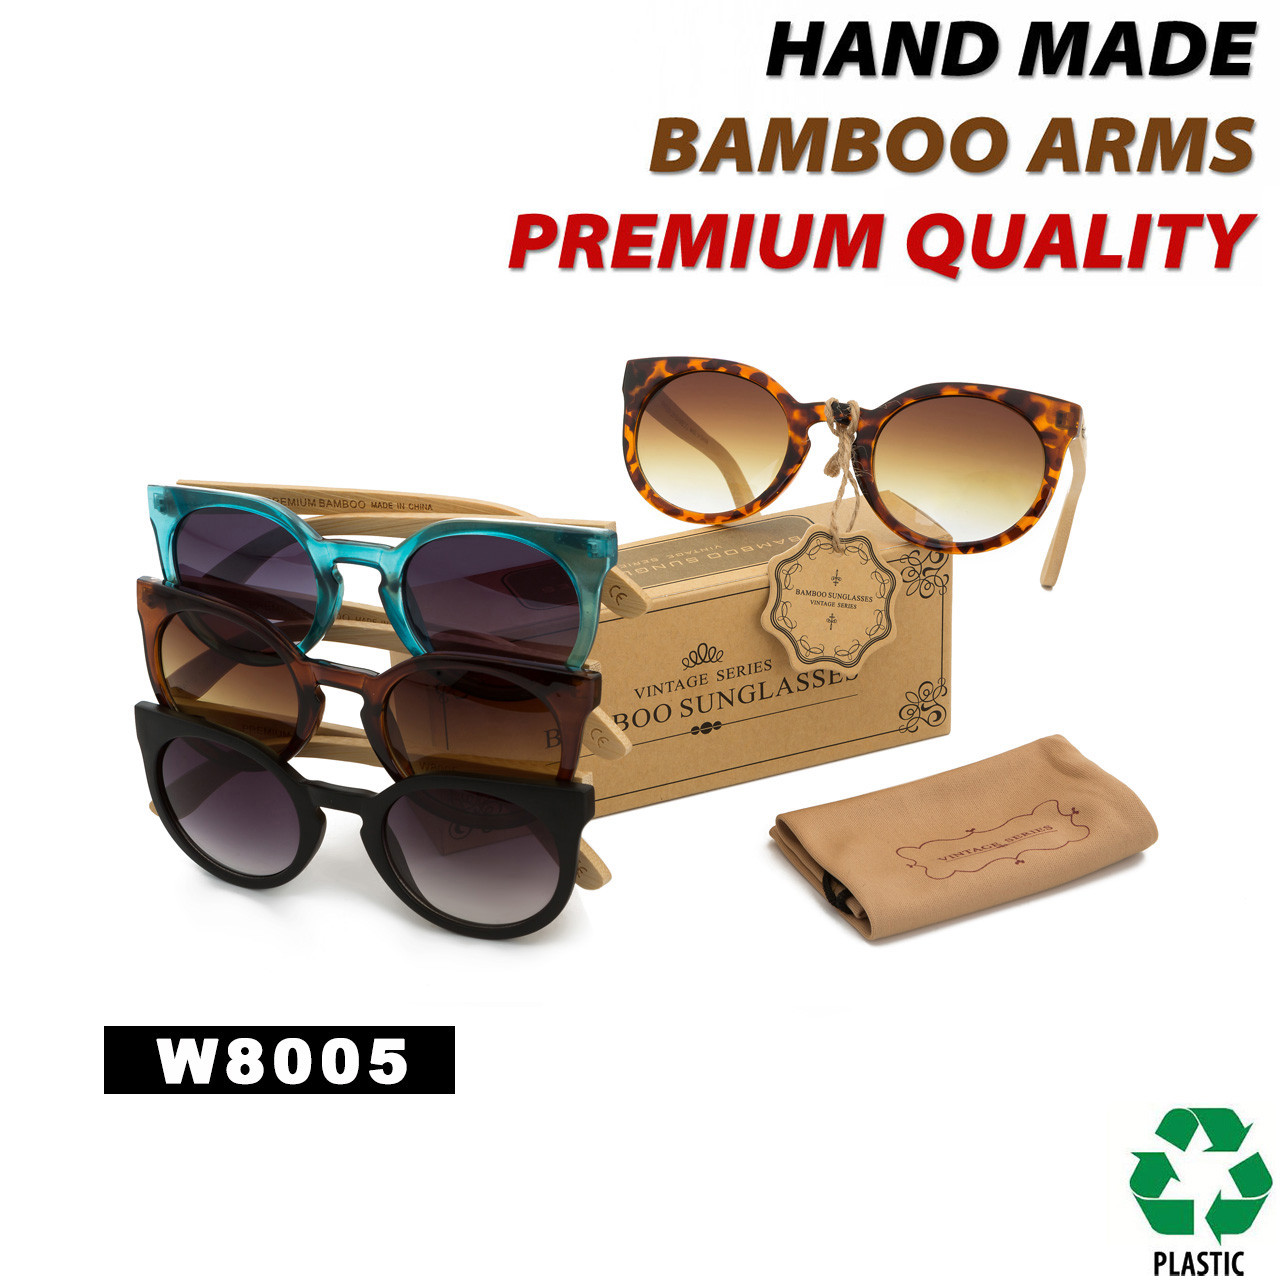 Bamboo Wood Vintage Sunglasses - Style #W8005